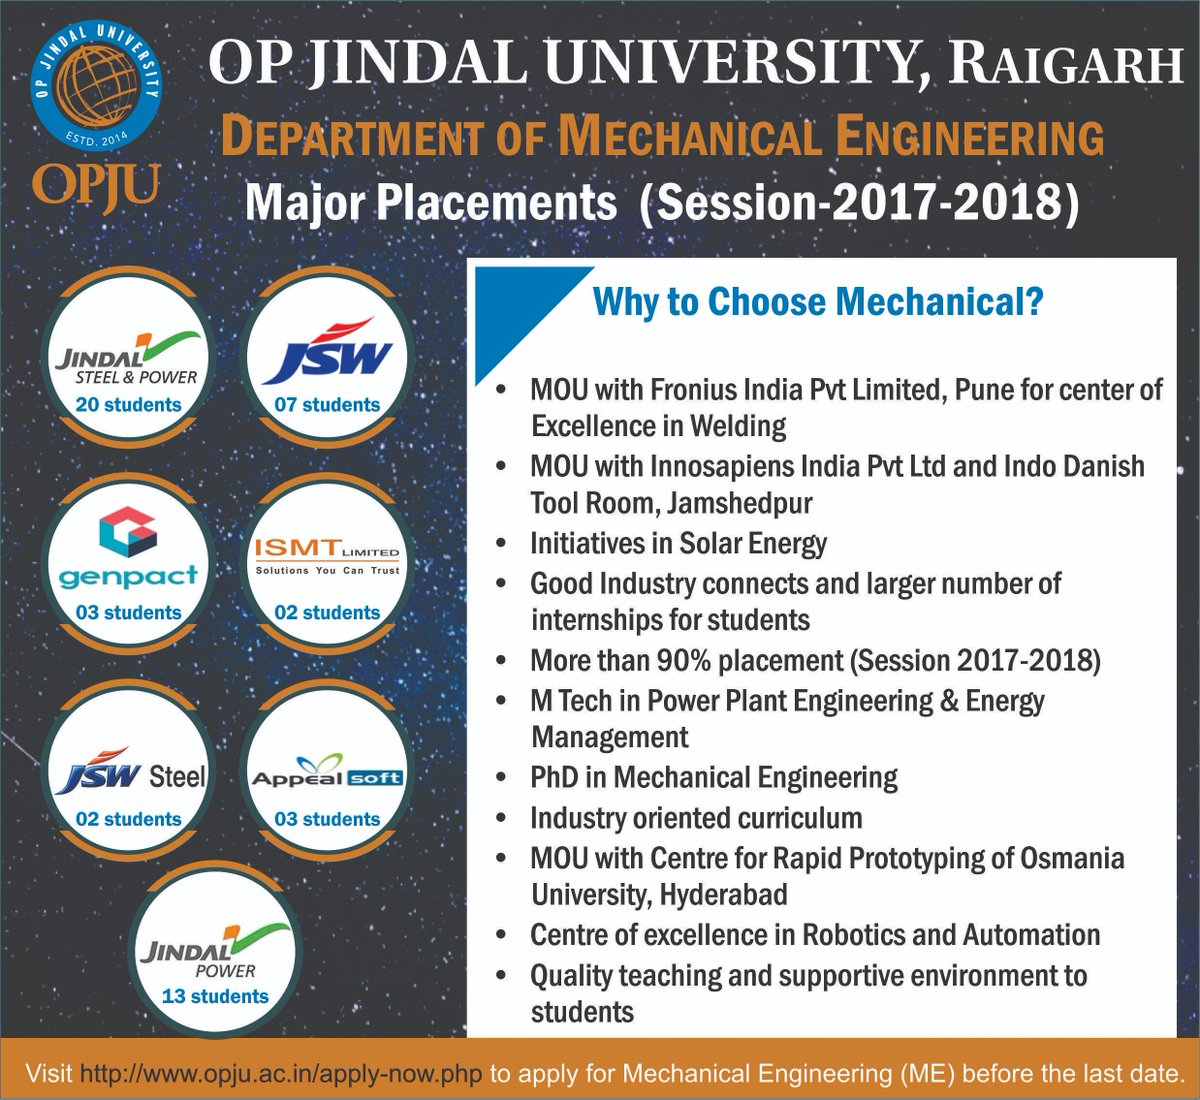 Admissions open for Mechanical Engineering courses. Apply now &amp; grab a chance to be a part of this World-Class University.  Last date for application is just round the corner, hurry &amp; register now -  http://www. opju.ac.in/apply-now.php  &nbsp;     #OPJU #Raigarh #Mechanical #Engineering #Admission<br>http://pic.twitter.com/kOKK6CgQFh